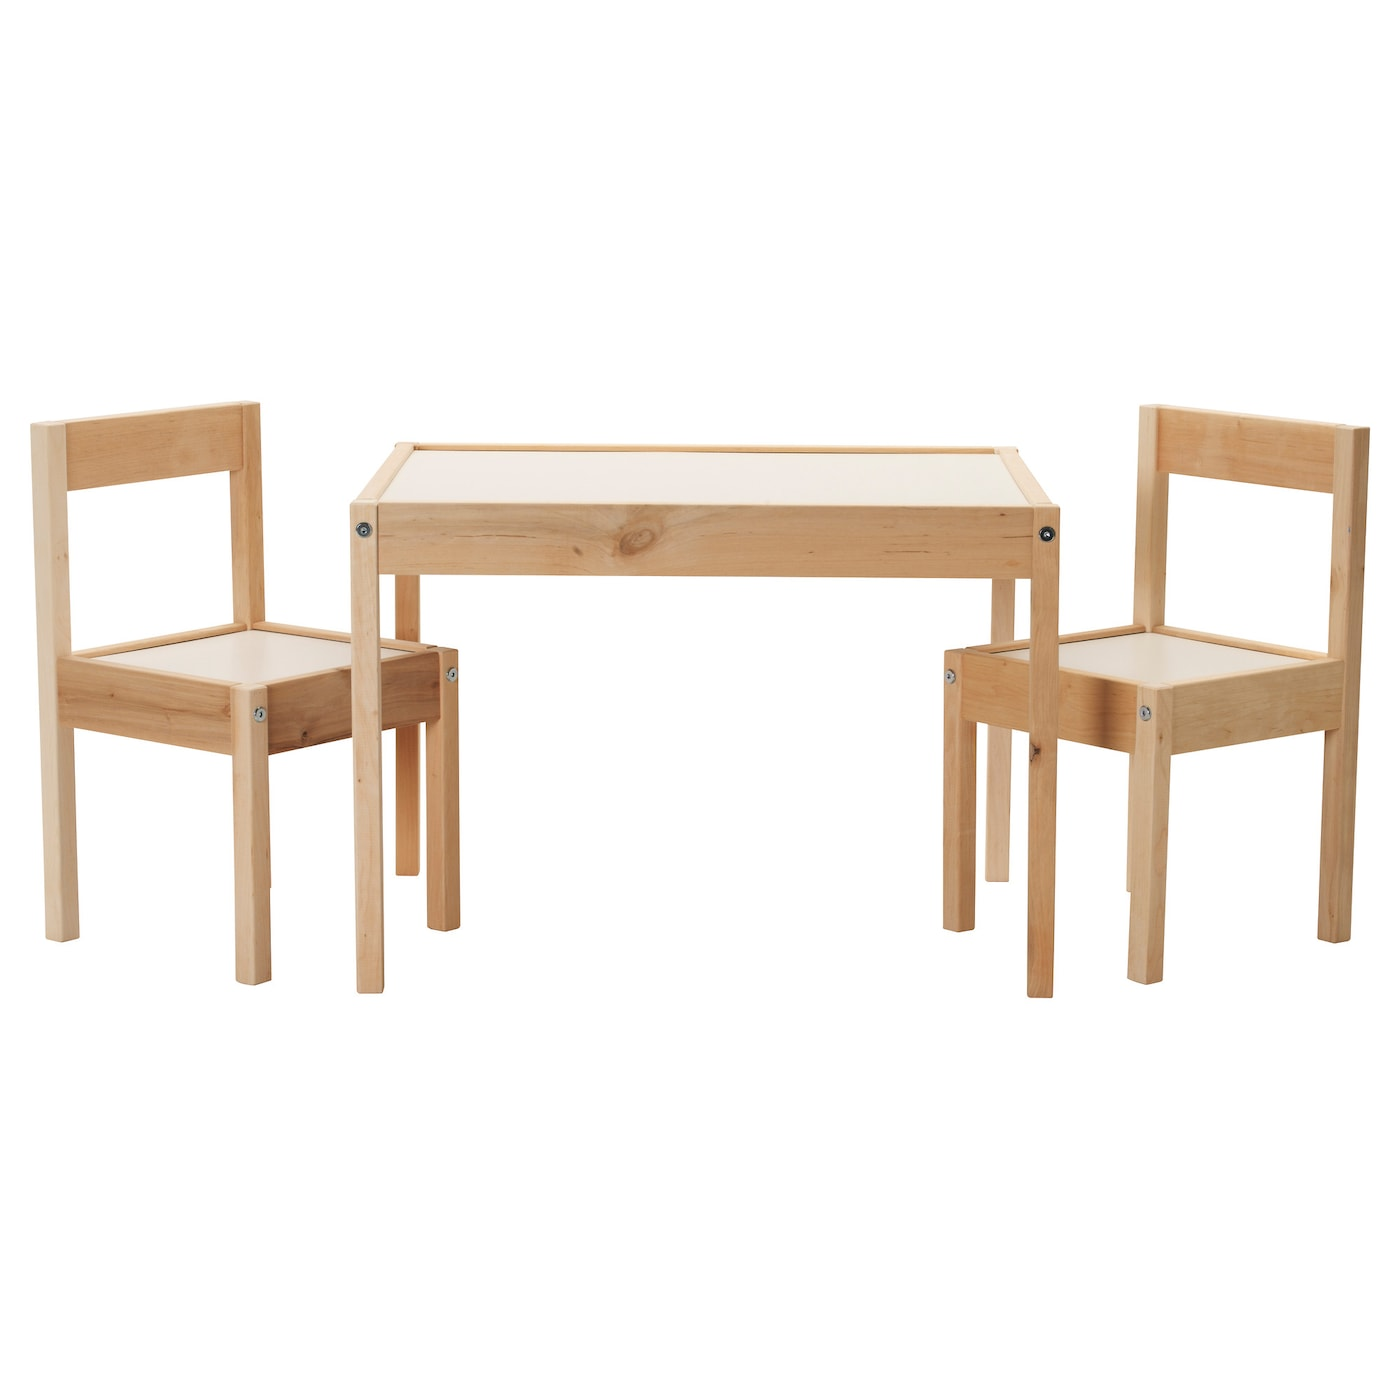 Ikea kids table and chairs -